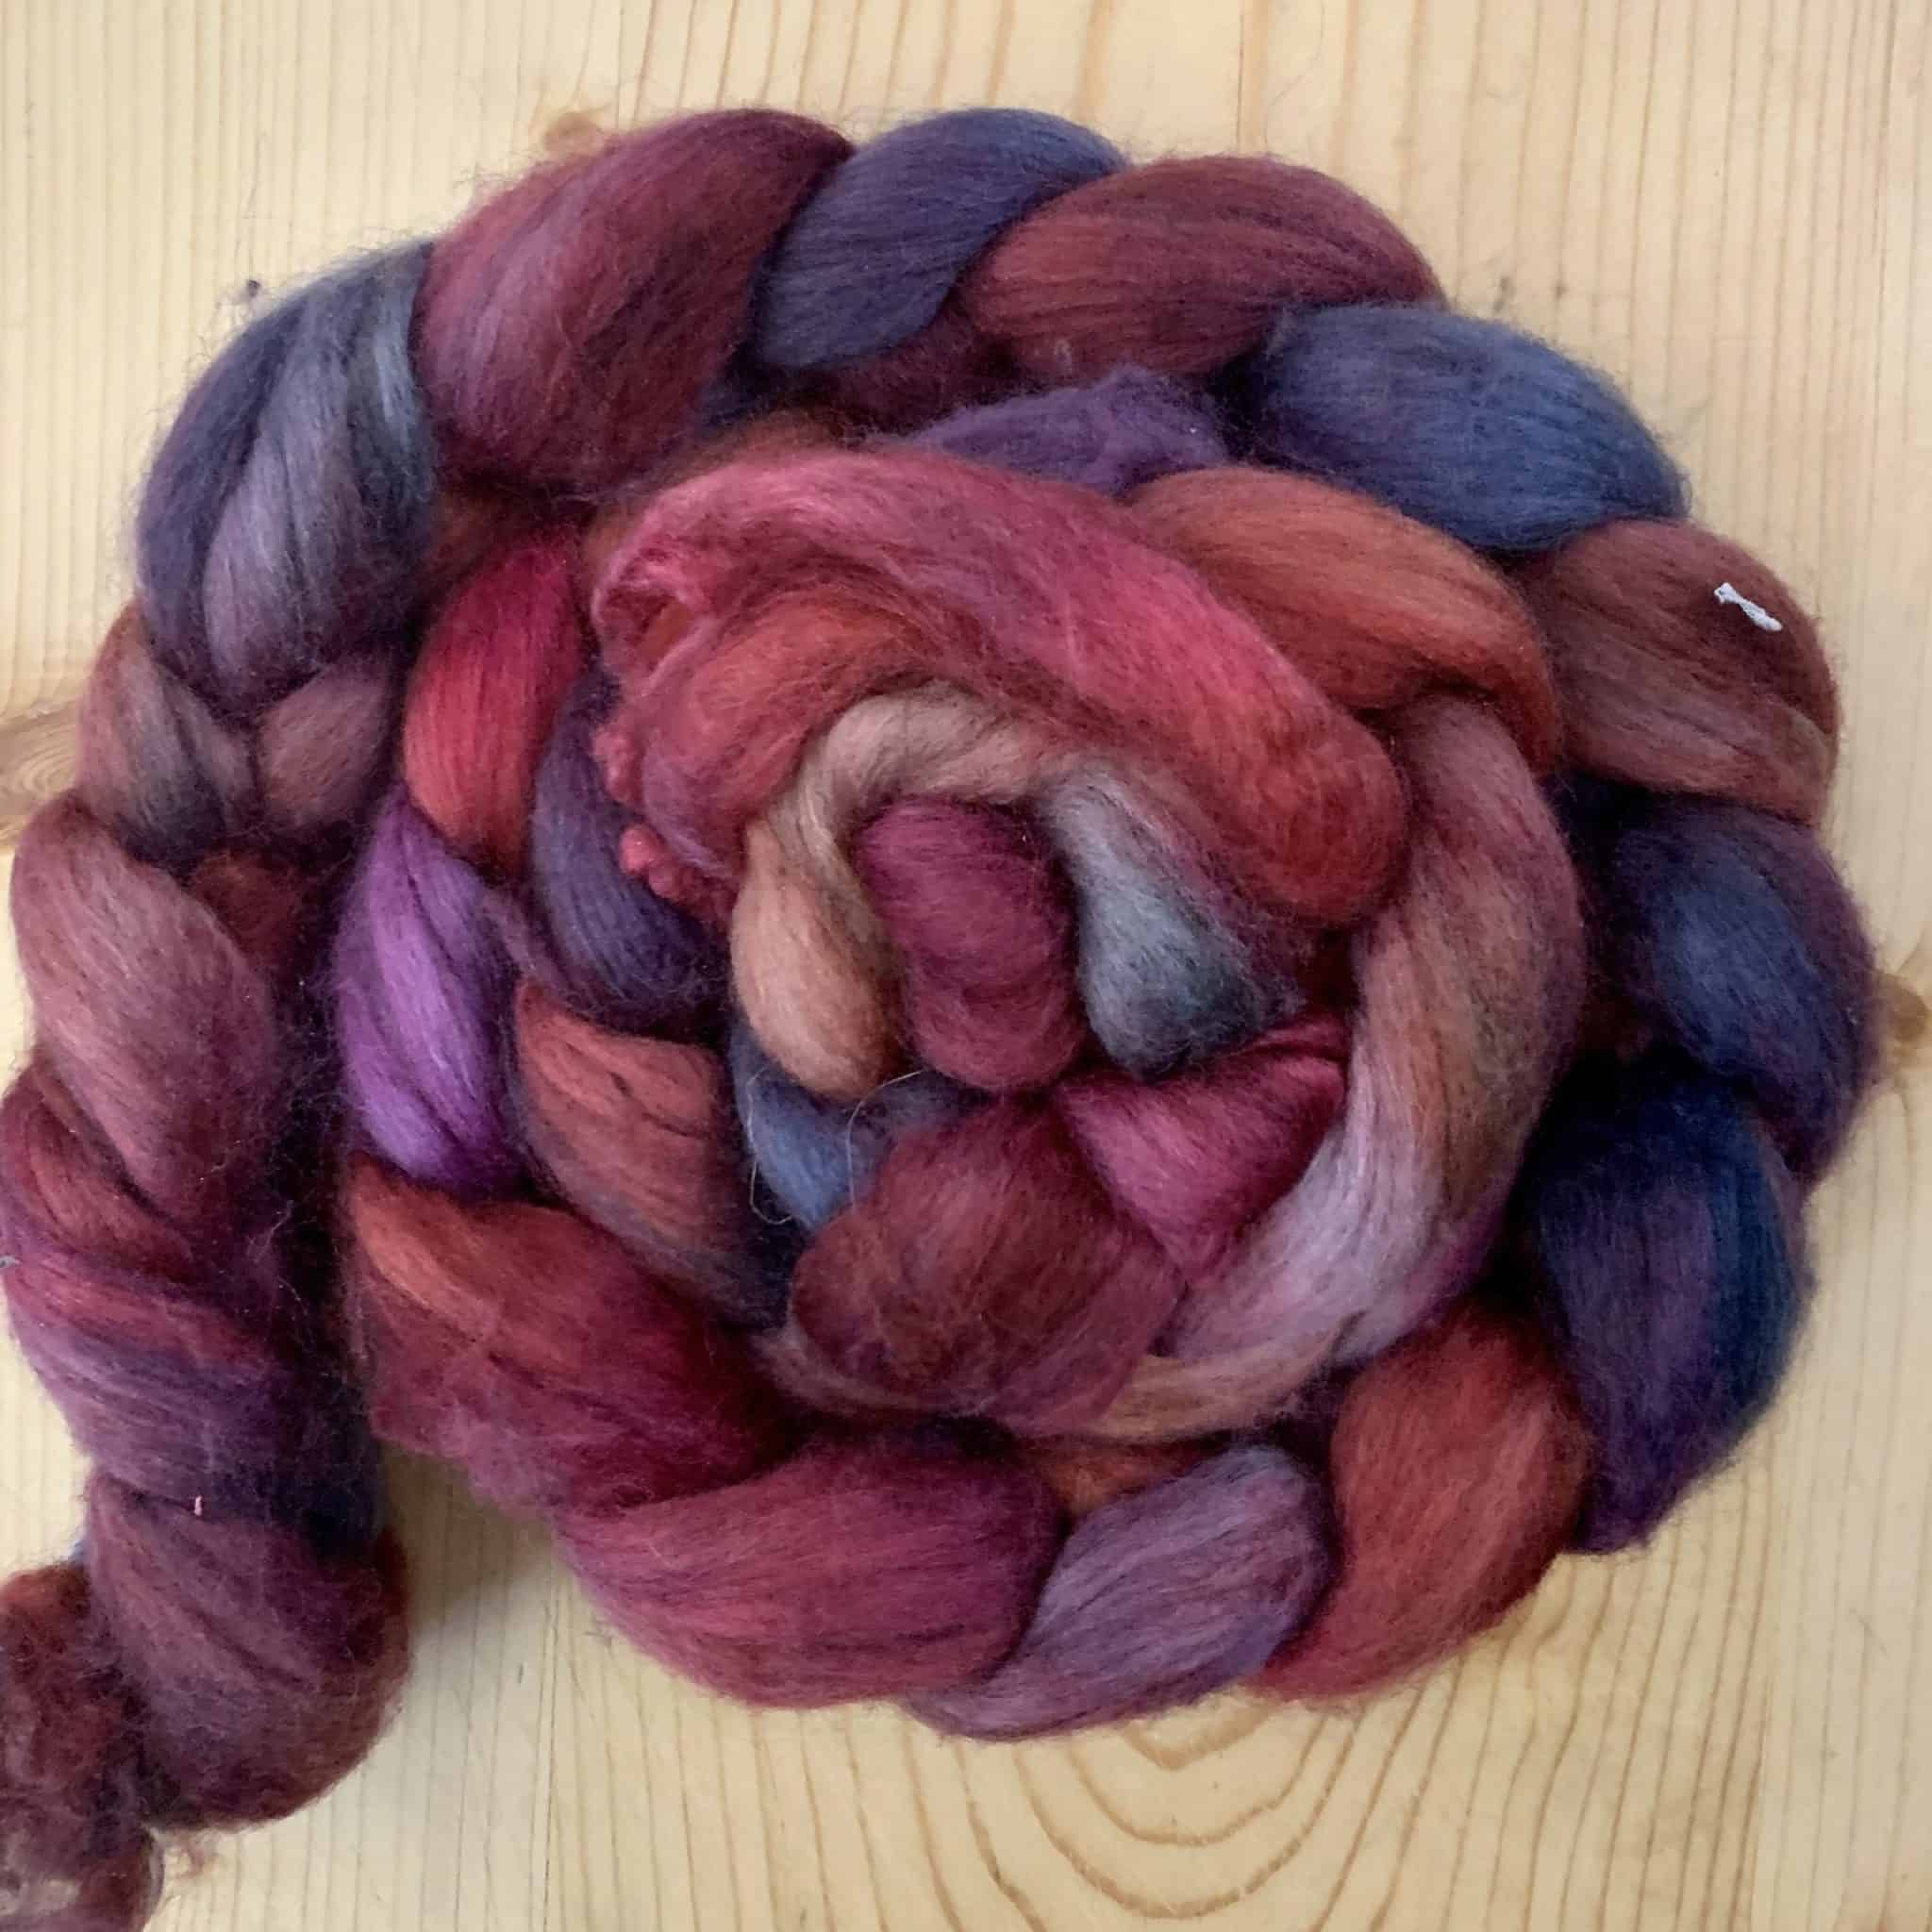 A coiled braid of pink and purple fiber.